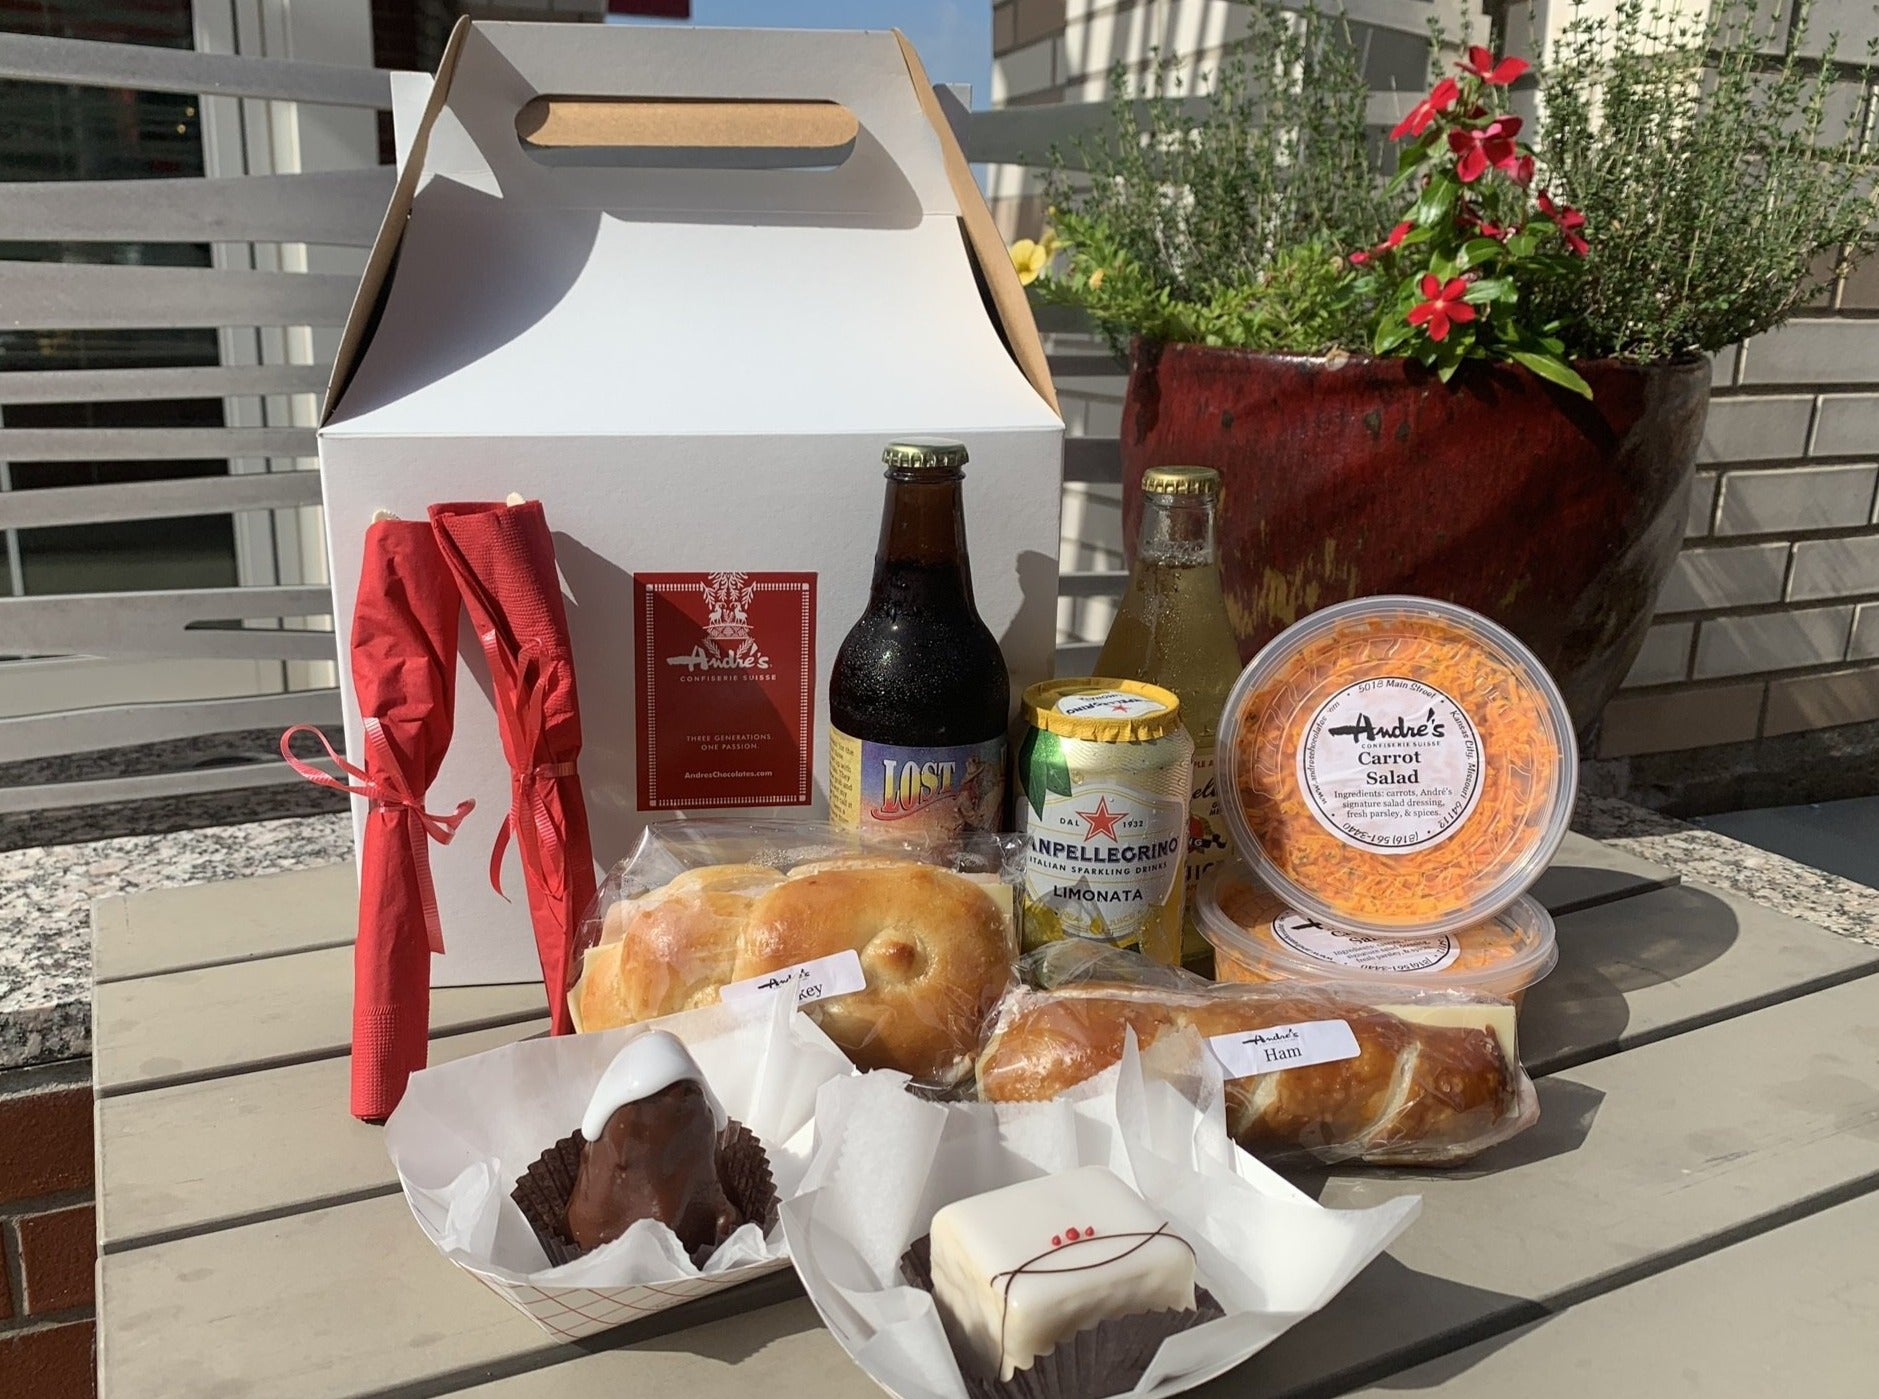 Picnic Pack for 4 (Sandwich, Salad + Desserts for 4) Pick up at 5018 Main St.